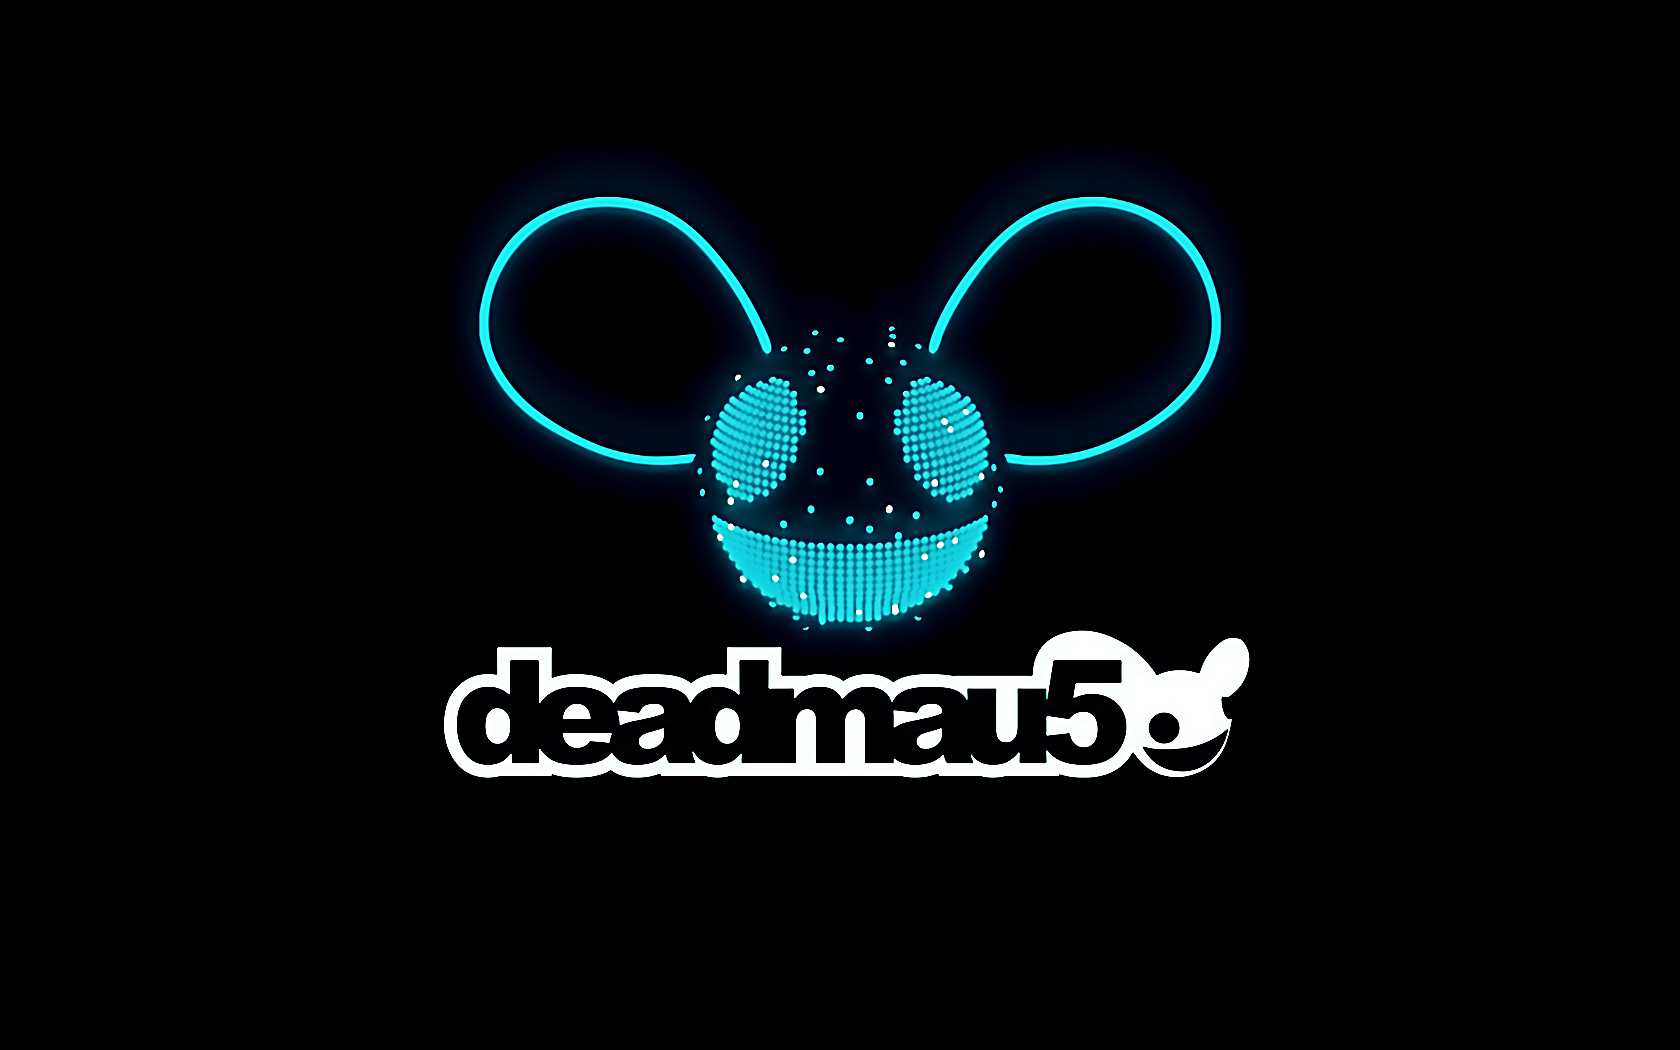 Deadmau5 Res: 1680x1050 / Size:141kb. Views: 28745